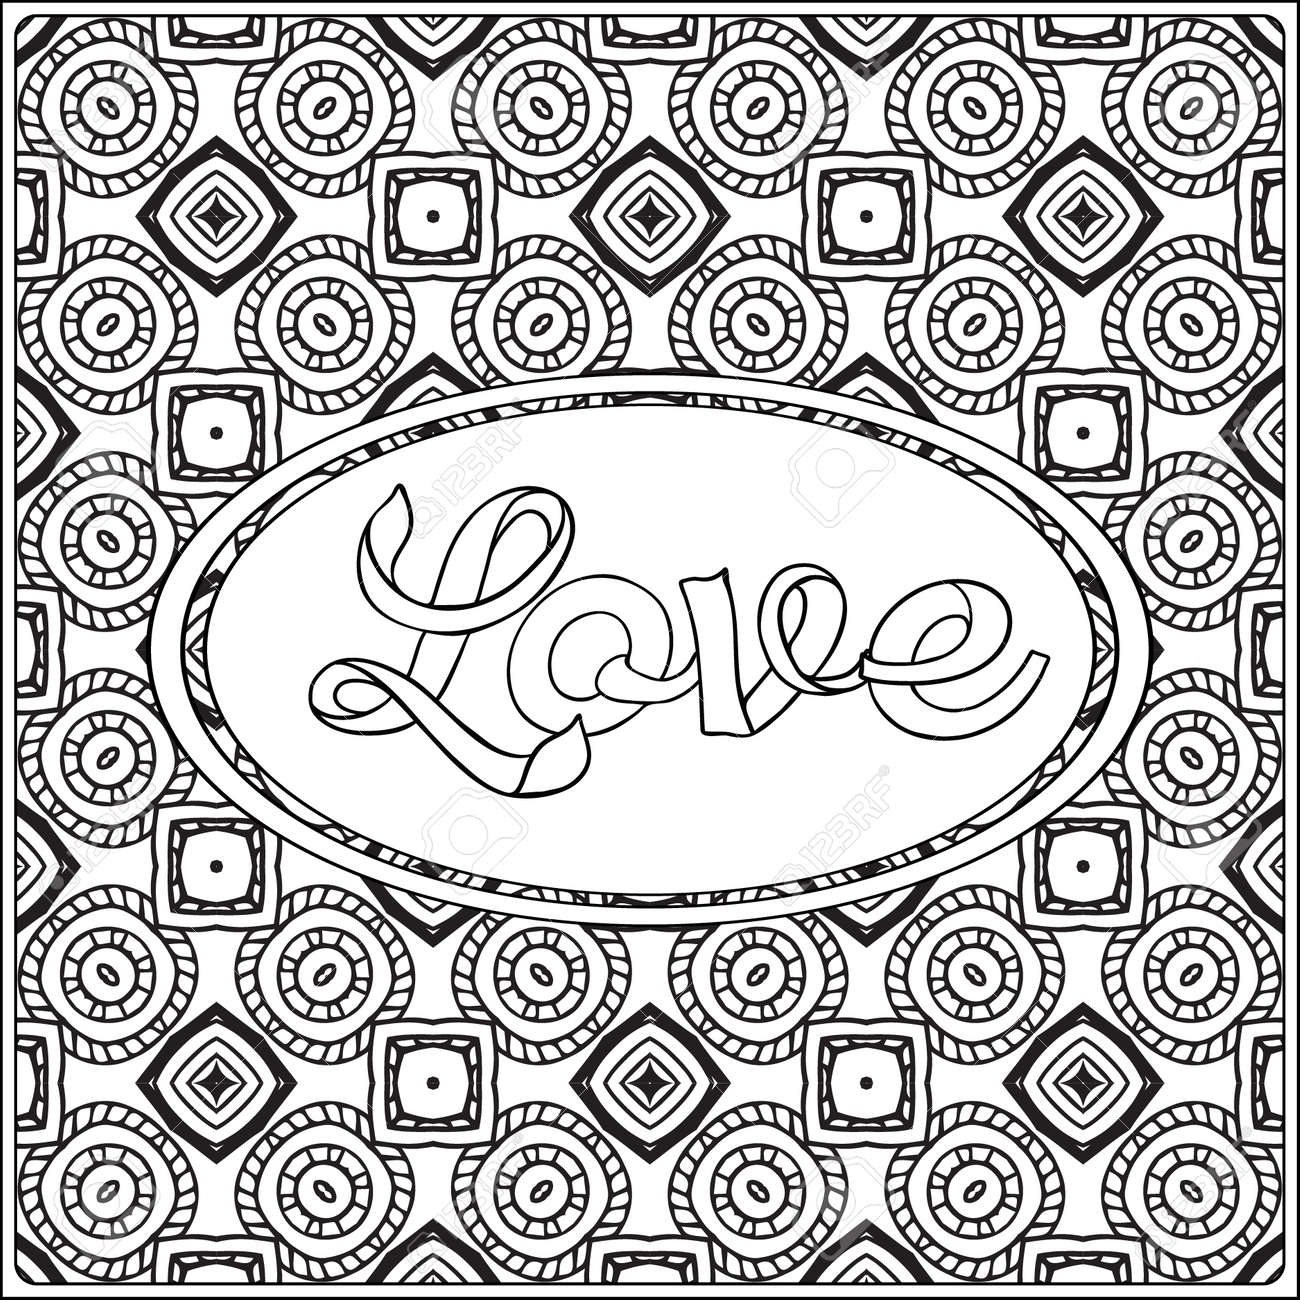 Love Lettering Coloring Page With Message On Vintage Pattern Background Adult Book